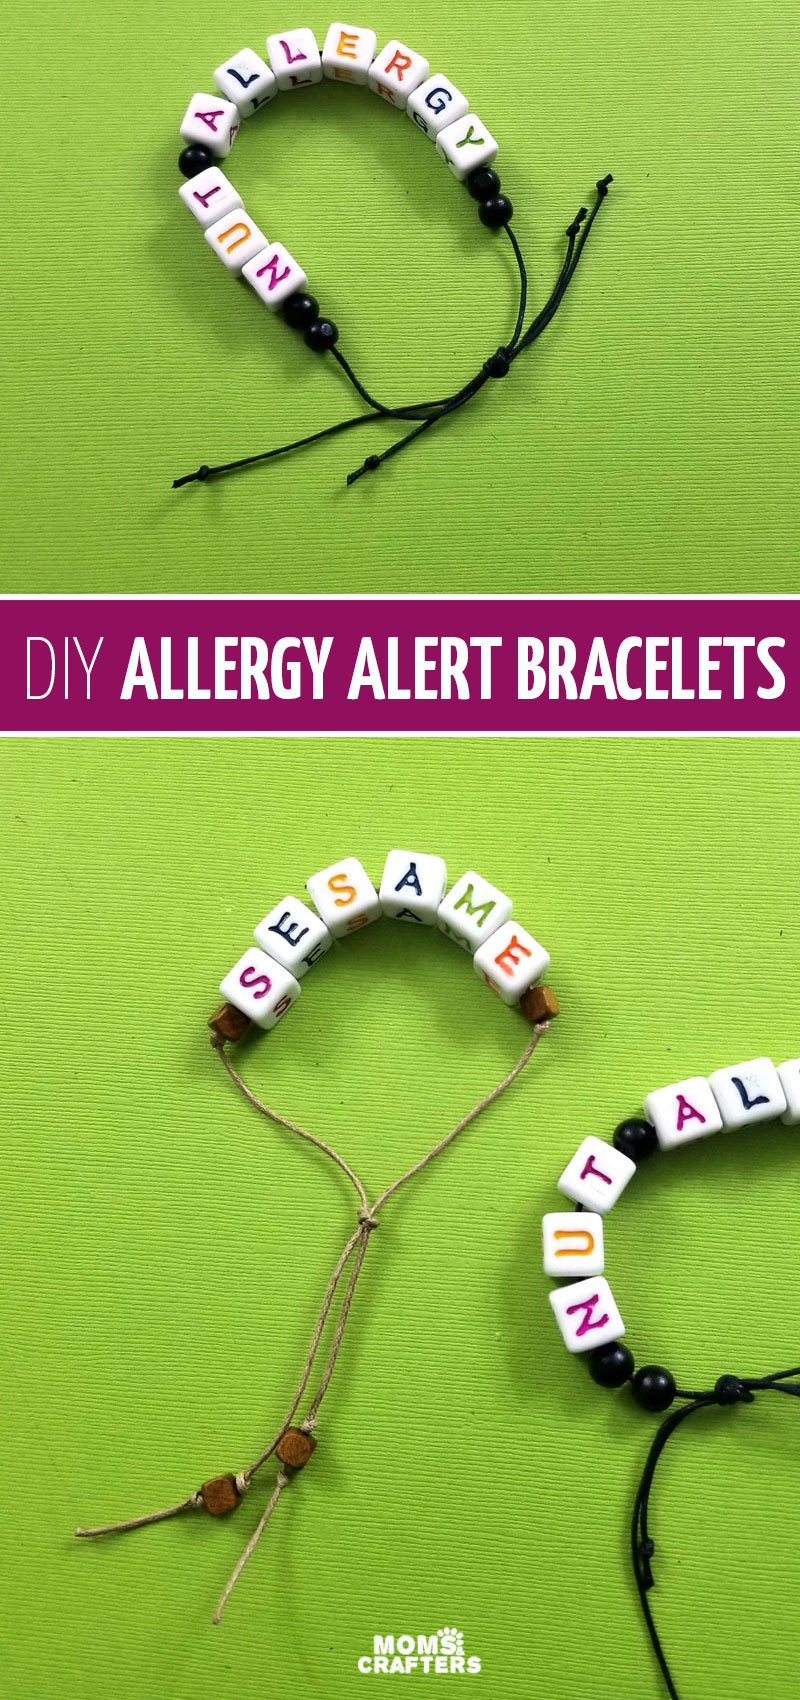 Food allergy mom tips and hacks - make your own food allergy bracelets! These allergy alert bracelets are fun for kids to make and wear.